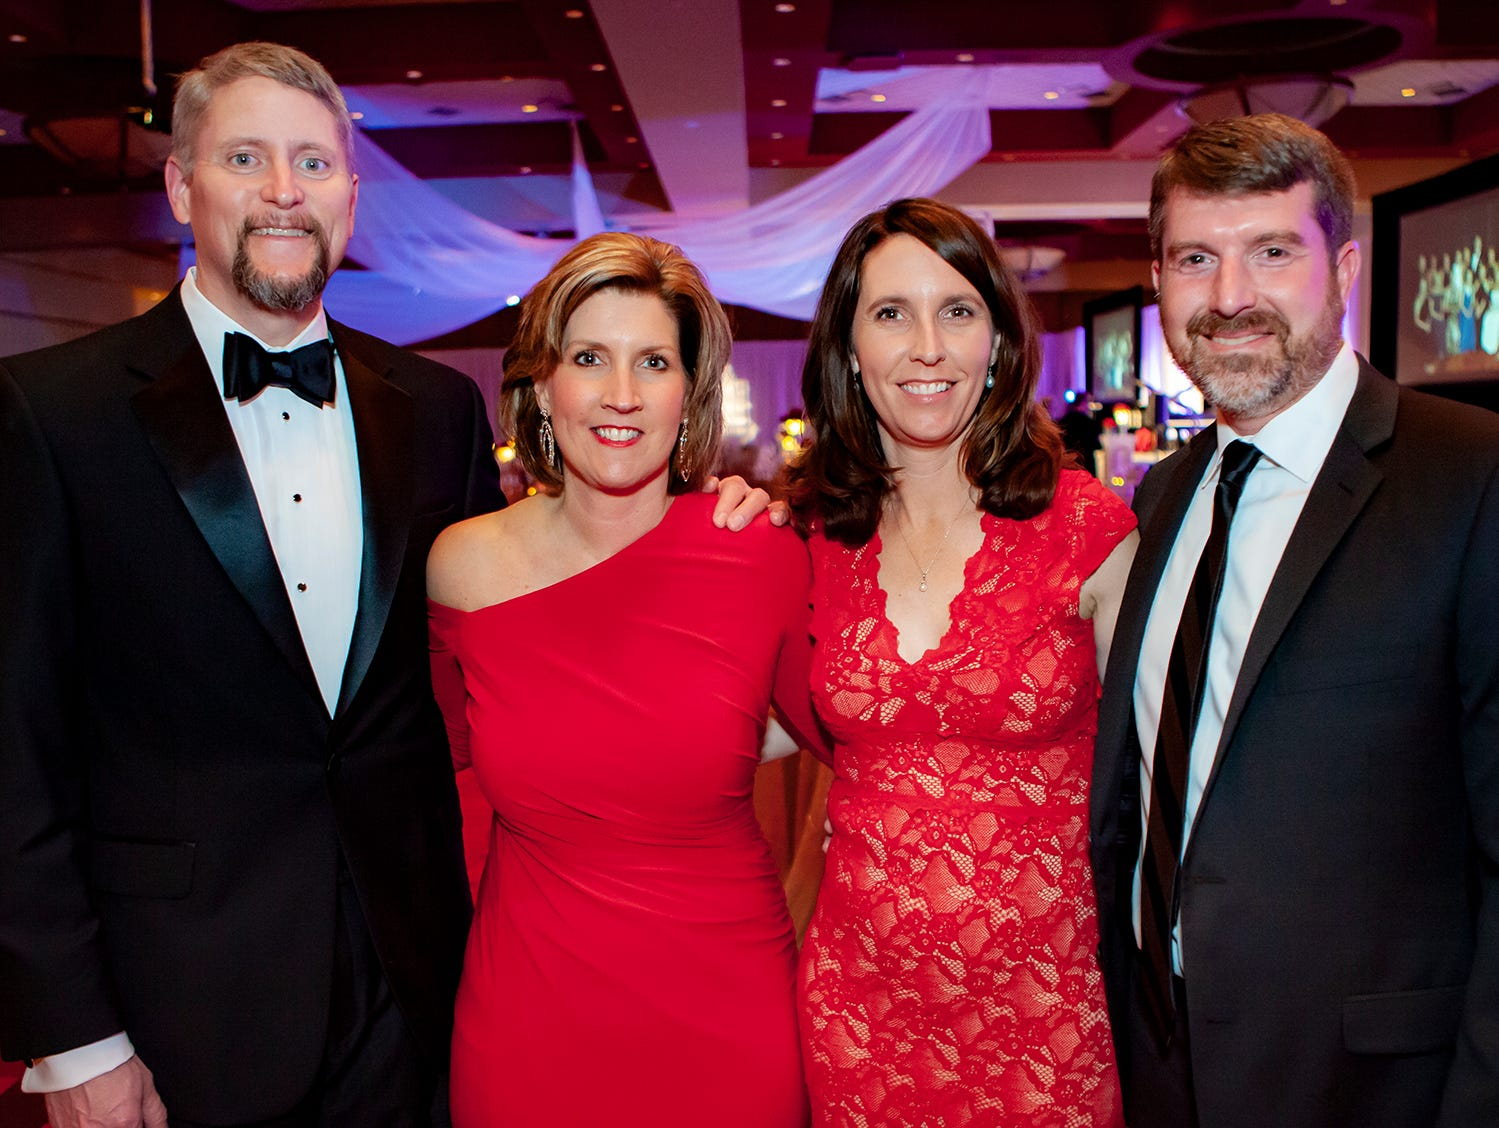 Jeff and Paula Todd with Vickie and Stephen Rich at the 2019 Saint Thomas Rutherford Foundation Gala on Saturday, Jan. 19, 2019 at Embassy Suites Murfreesboro.